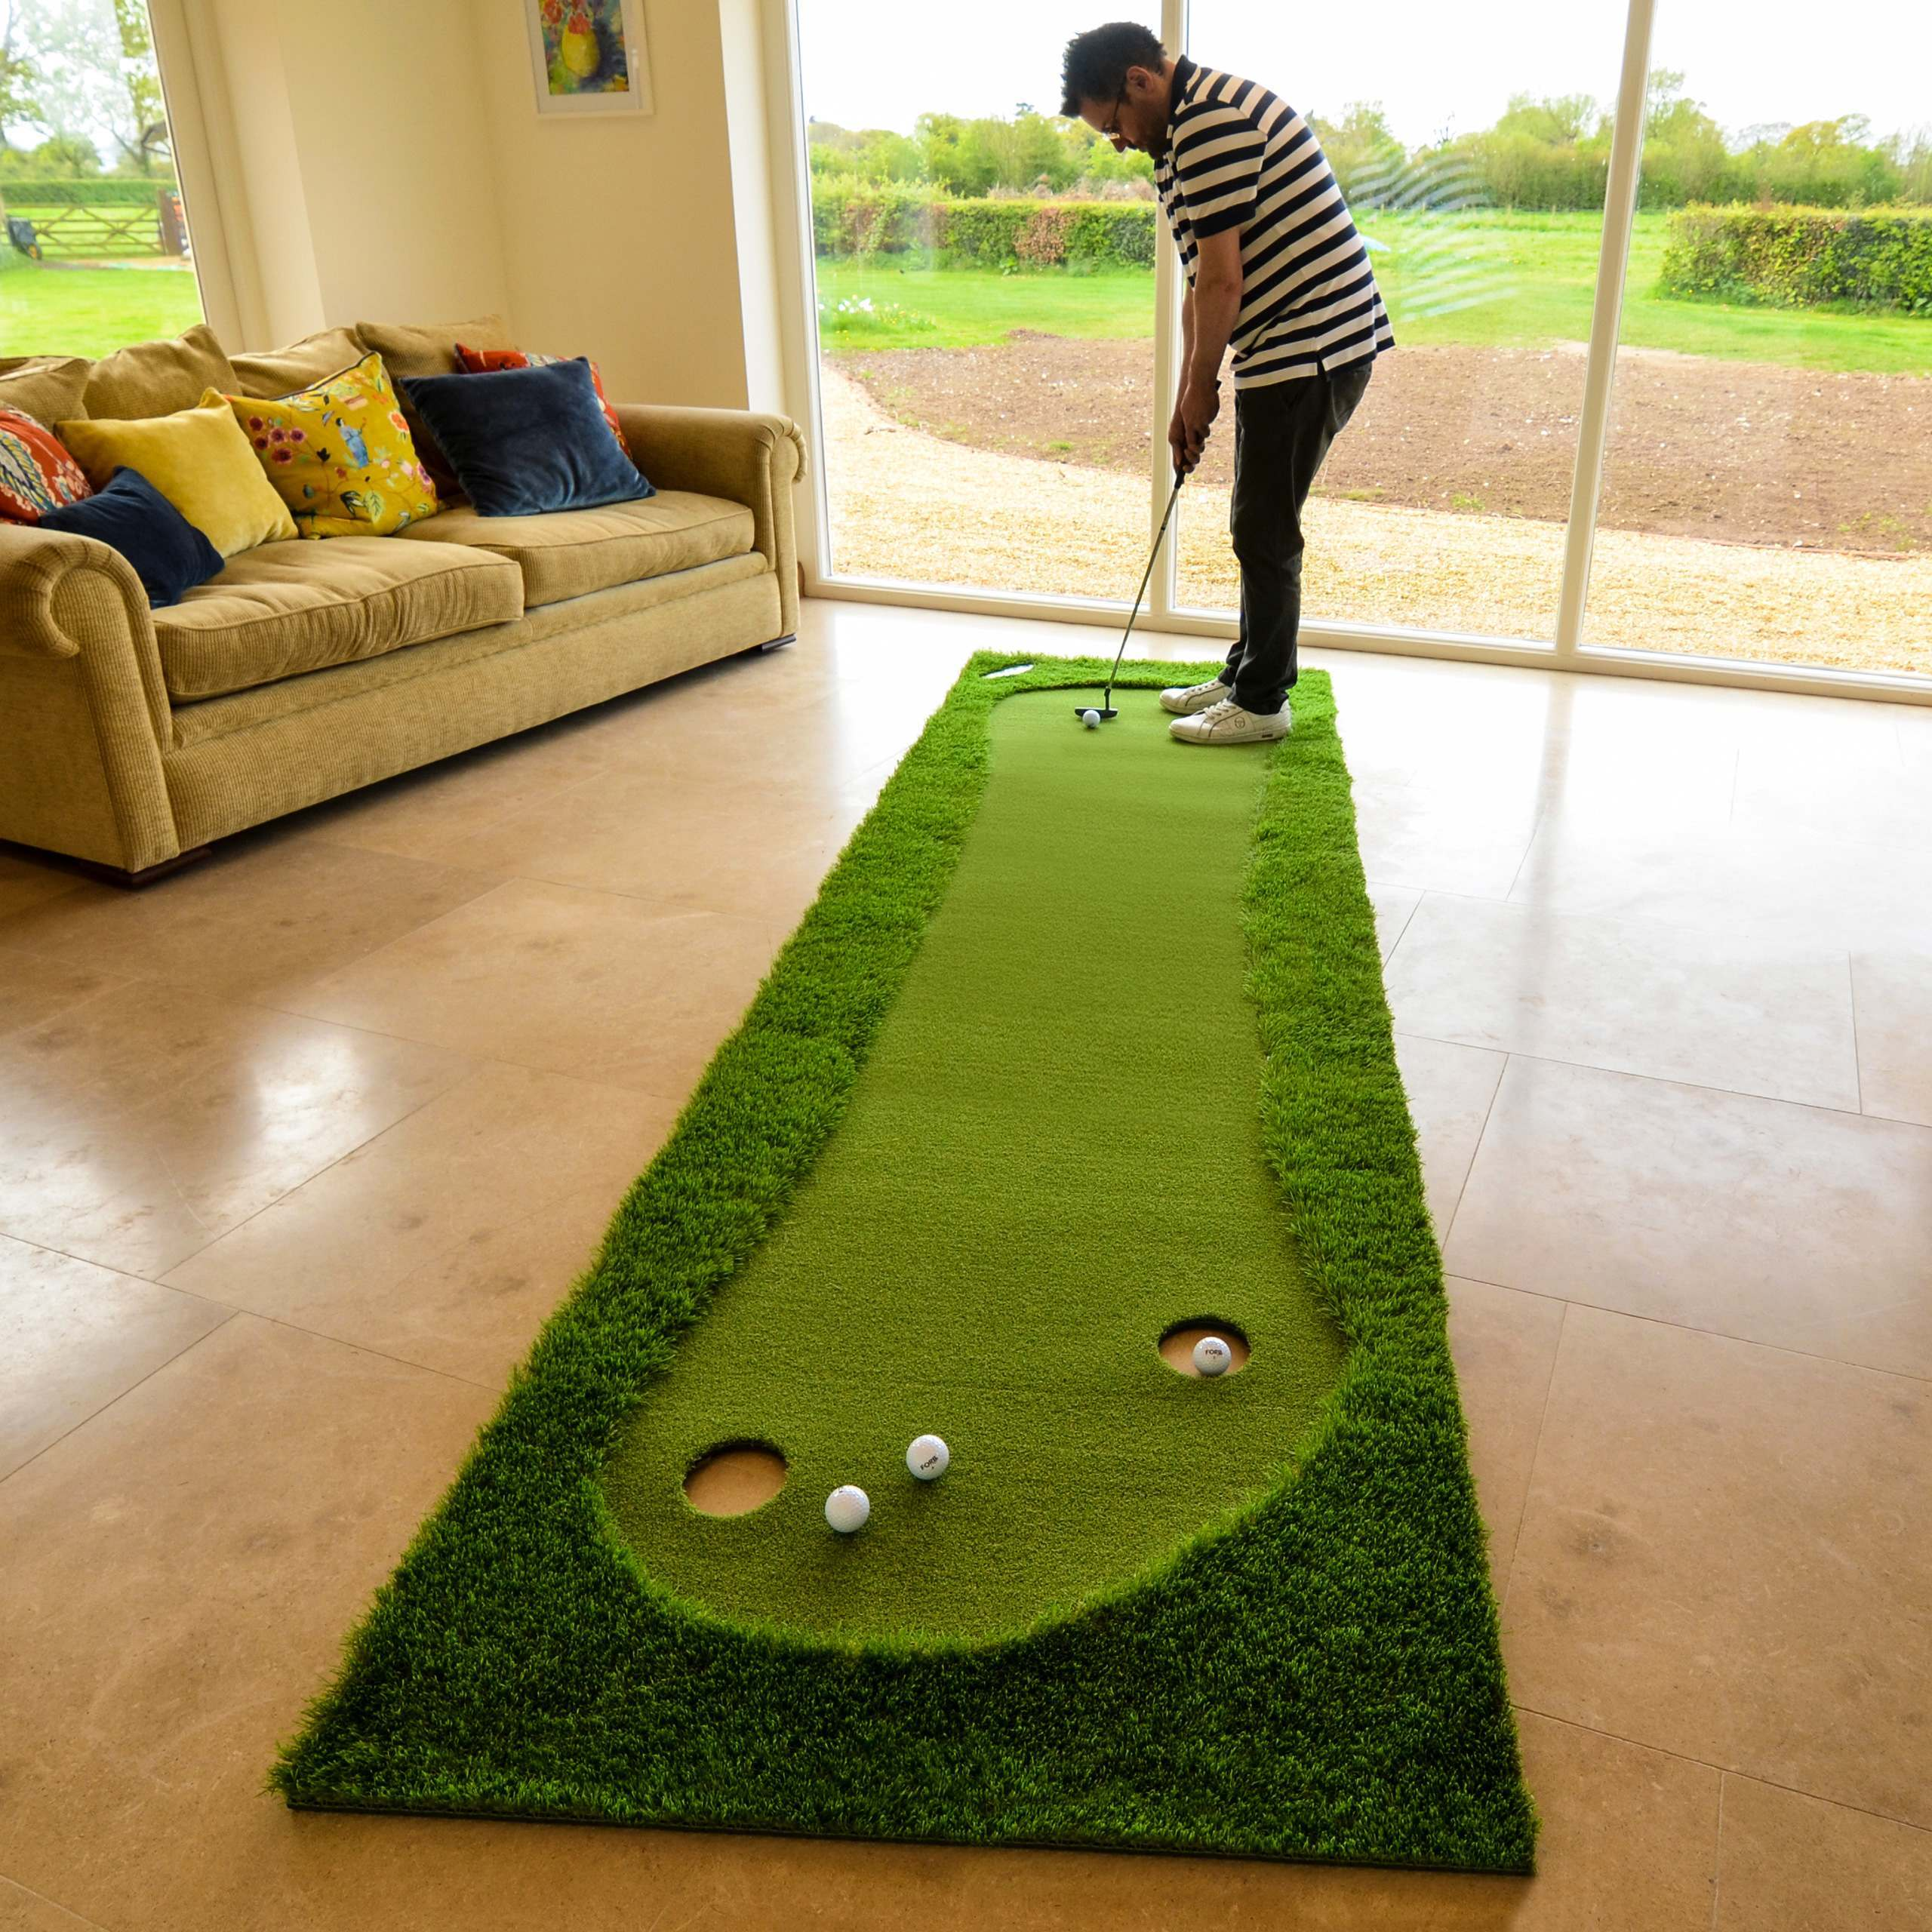 home stroke indoors greens practise mat aids and mats putting pin forb golf